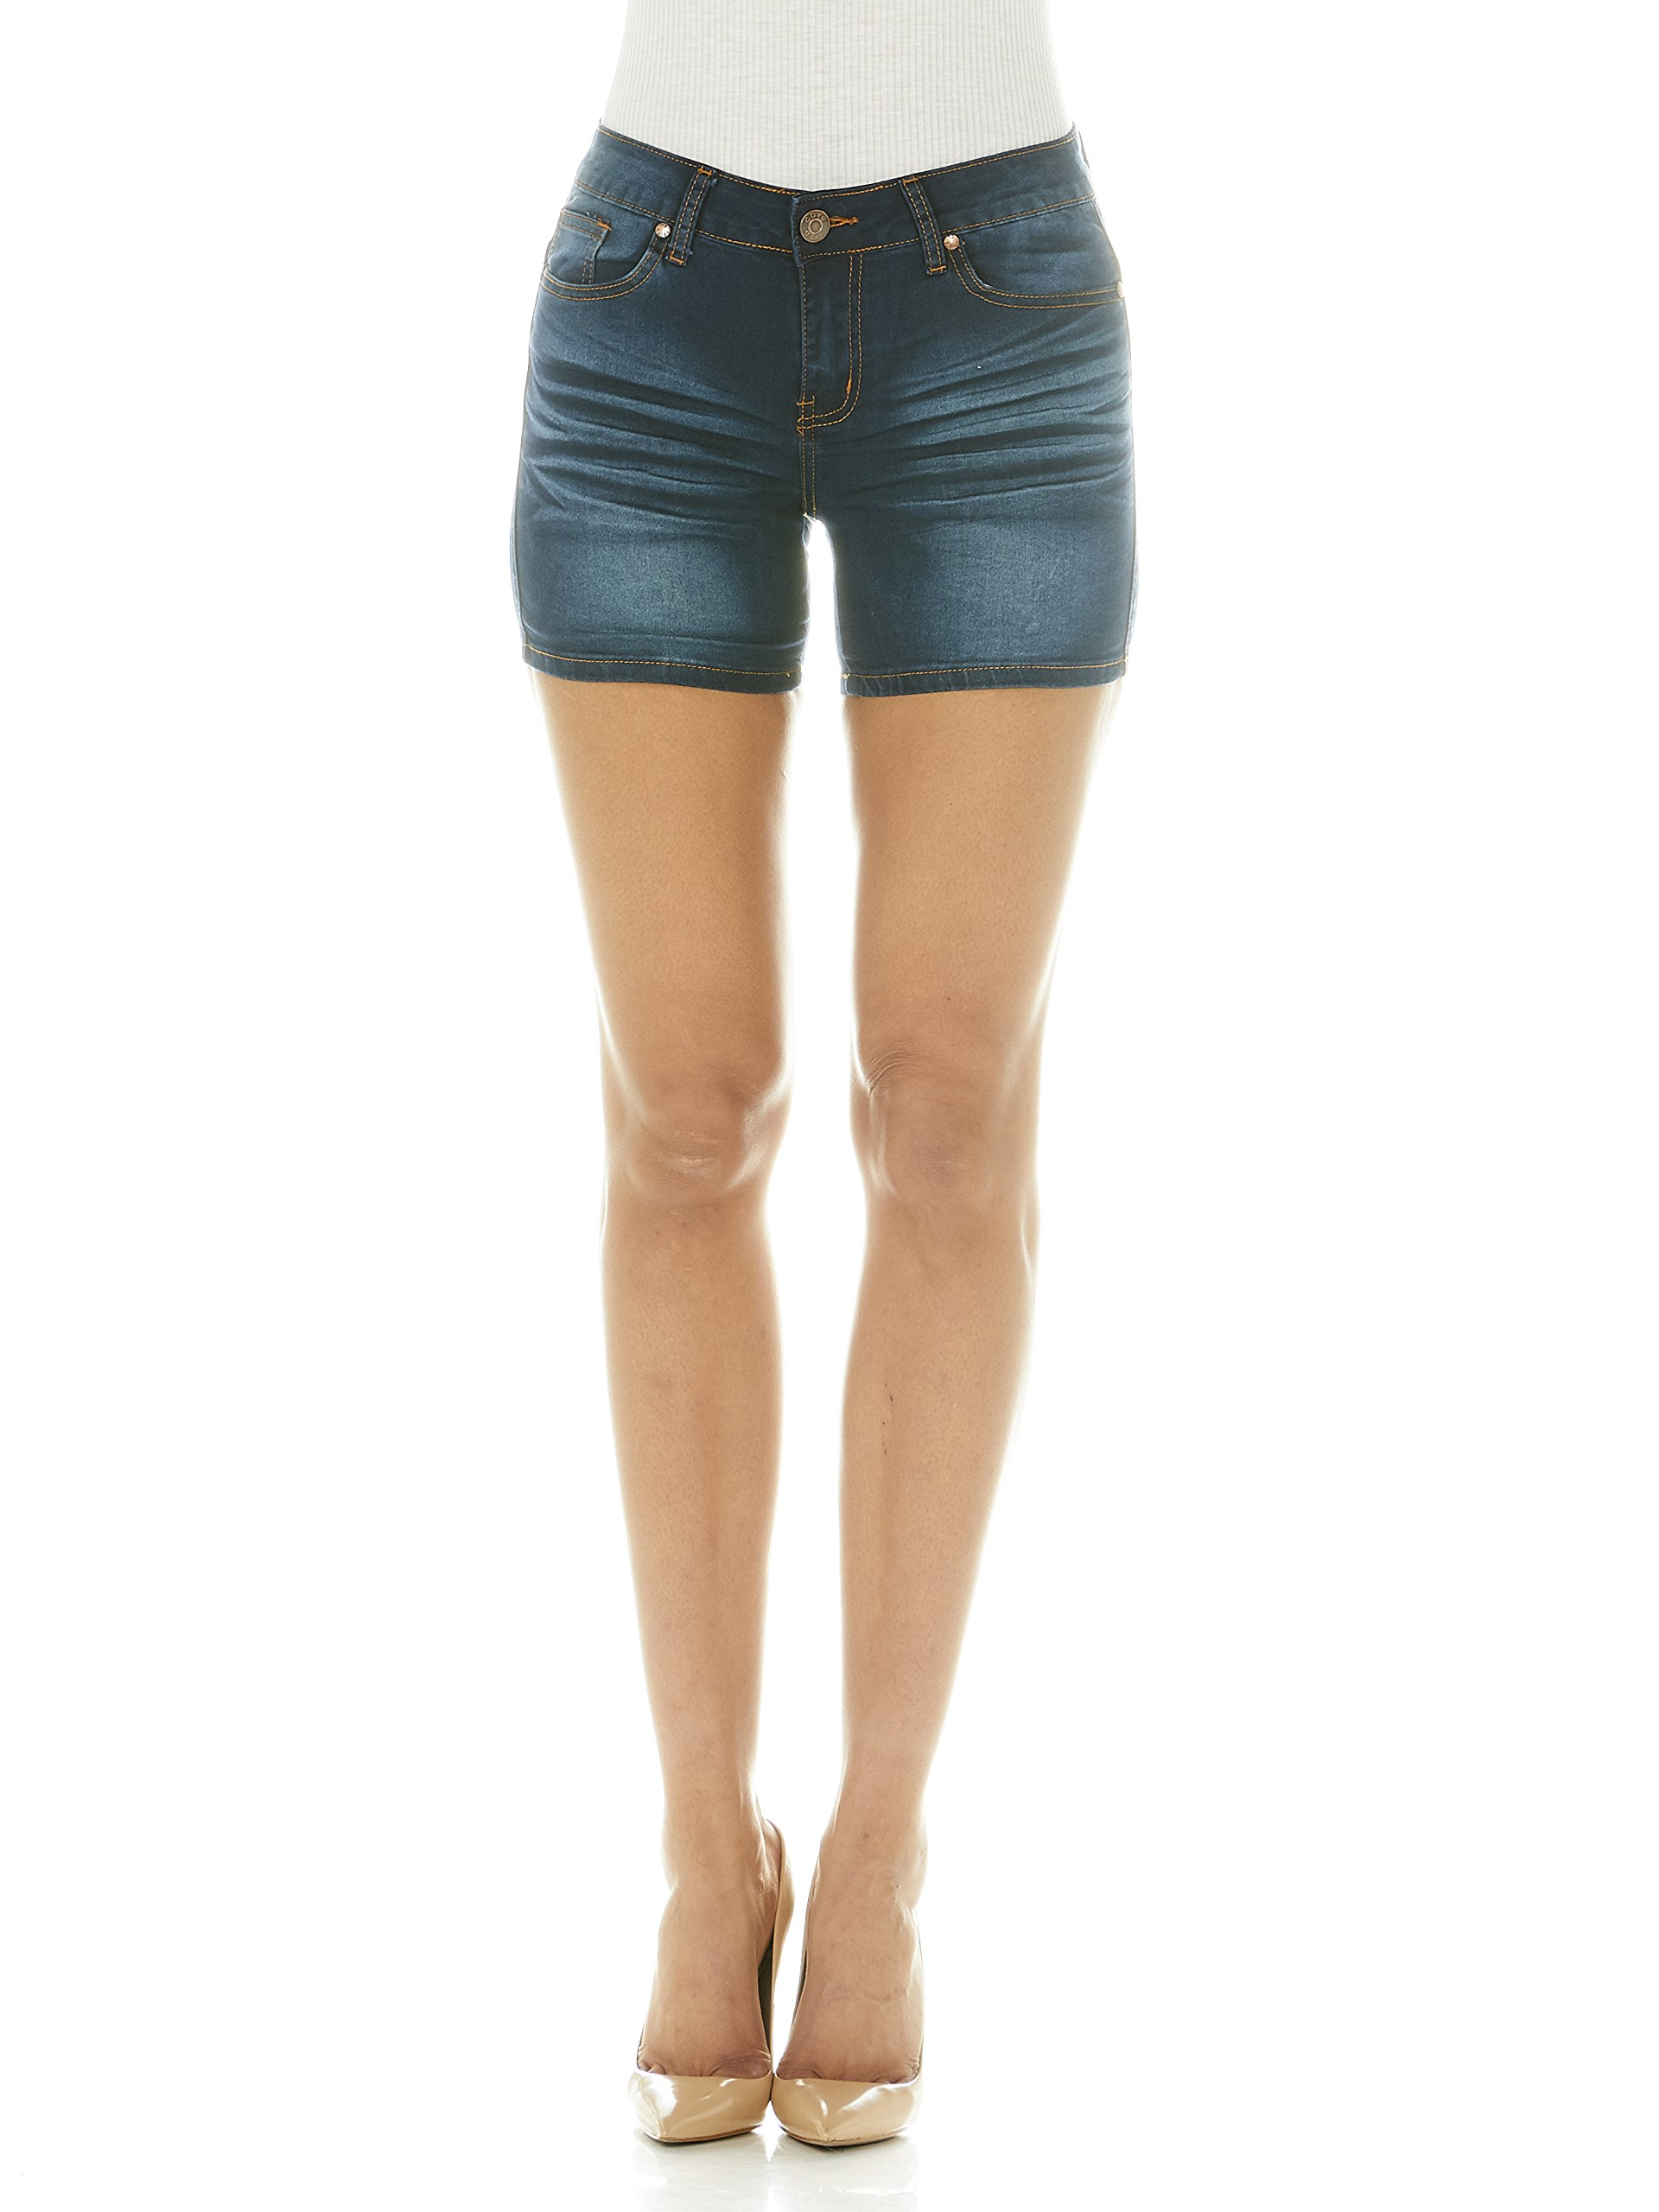 Cover Girl Jeans Women's Denim Shorts Mid Rise Blue Washes with Stretch Size 9 Electric Blue (3.5'' Inseam)